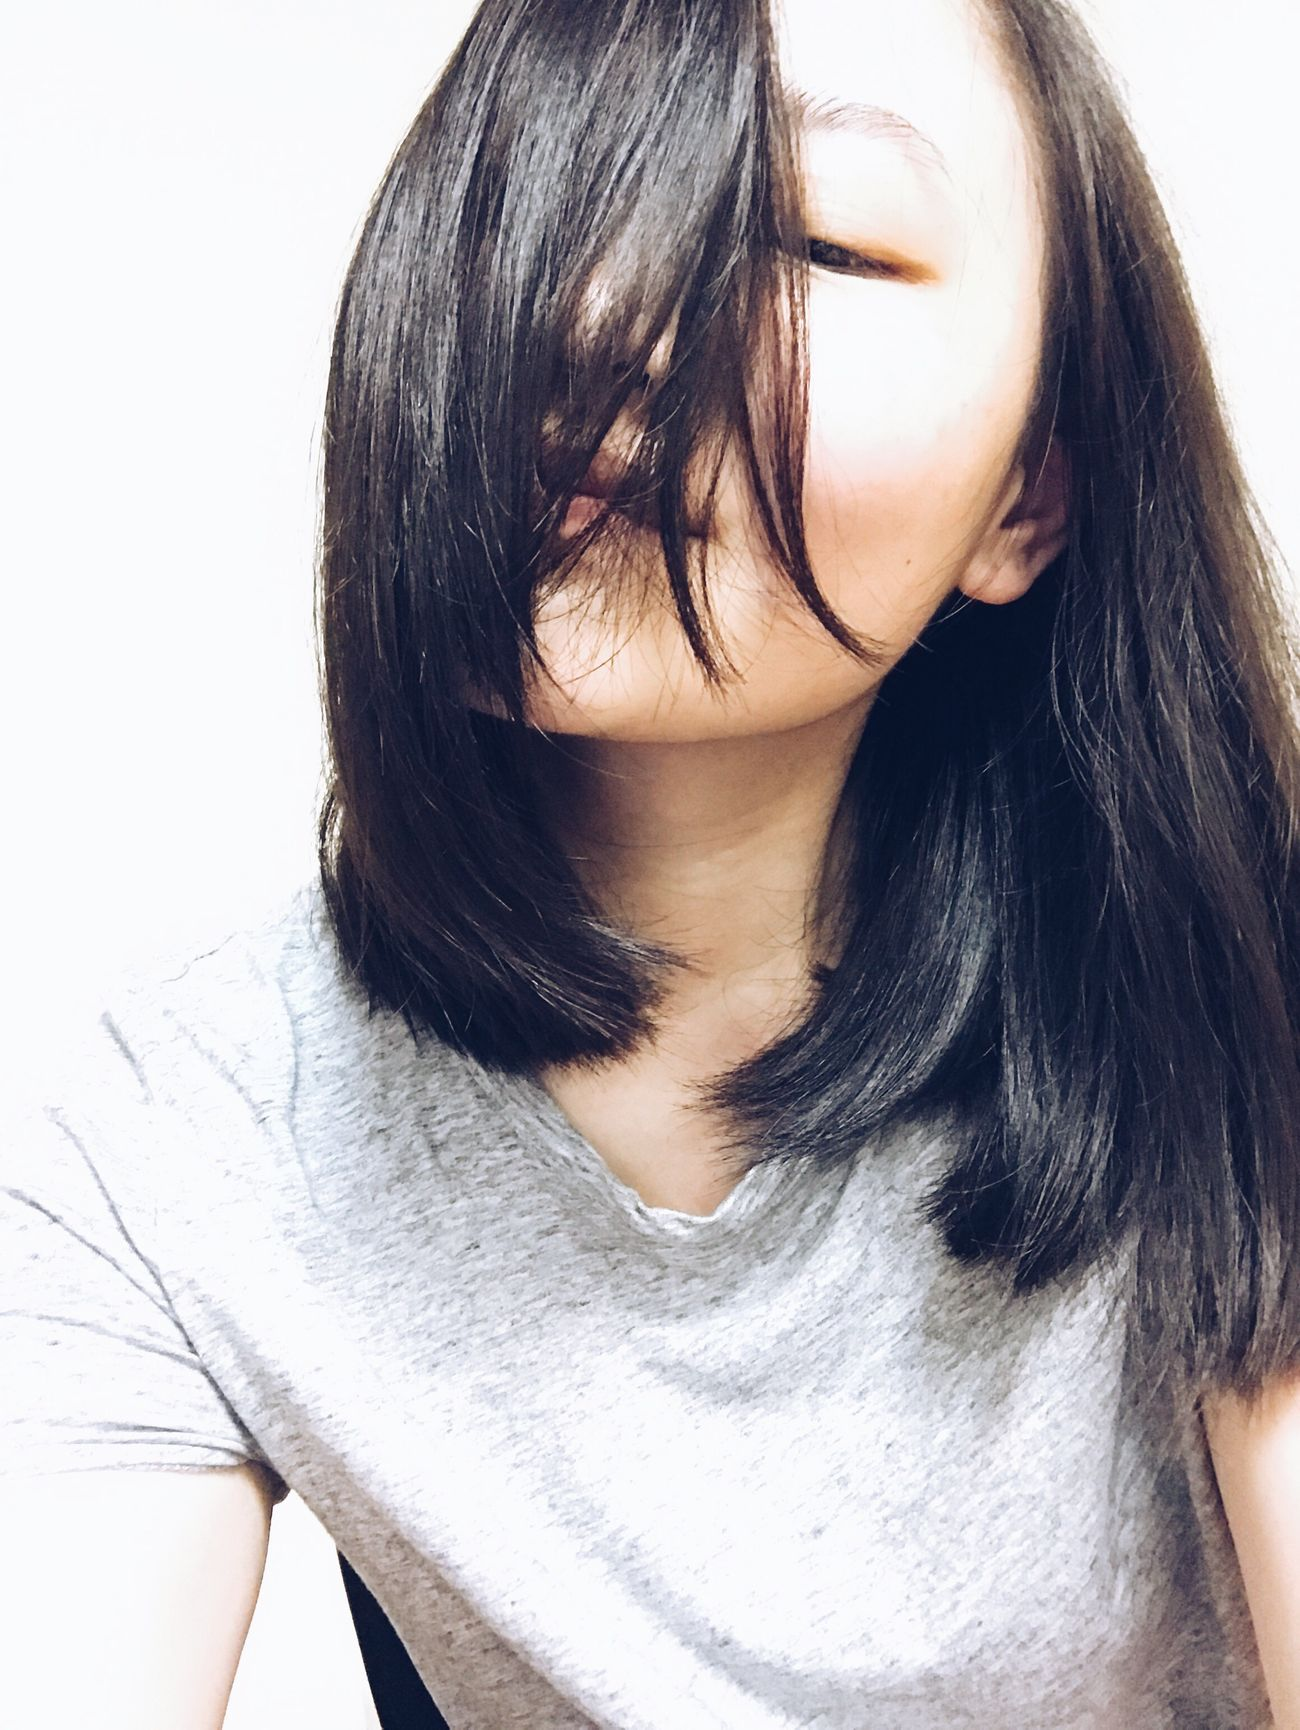 20161008 Cutting Hair Women Enjoying Life Photography Beauty Taiwan VSCO Yolo Kate's Daily EyeEm Hello World